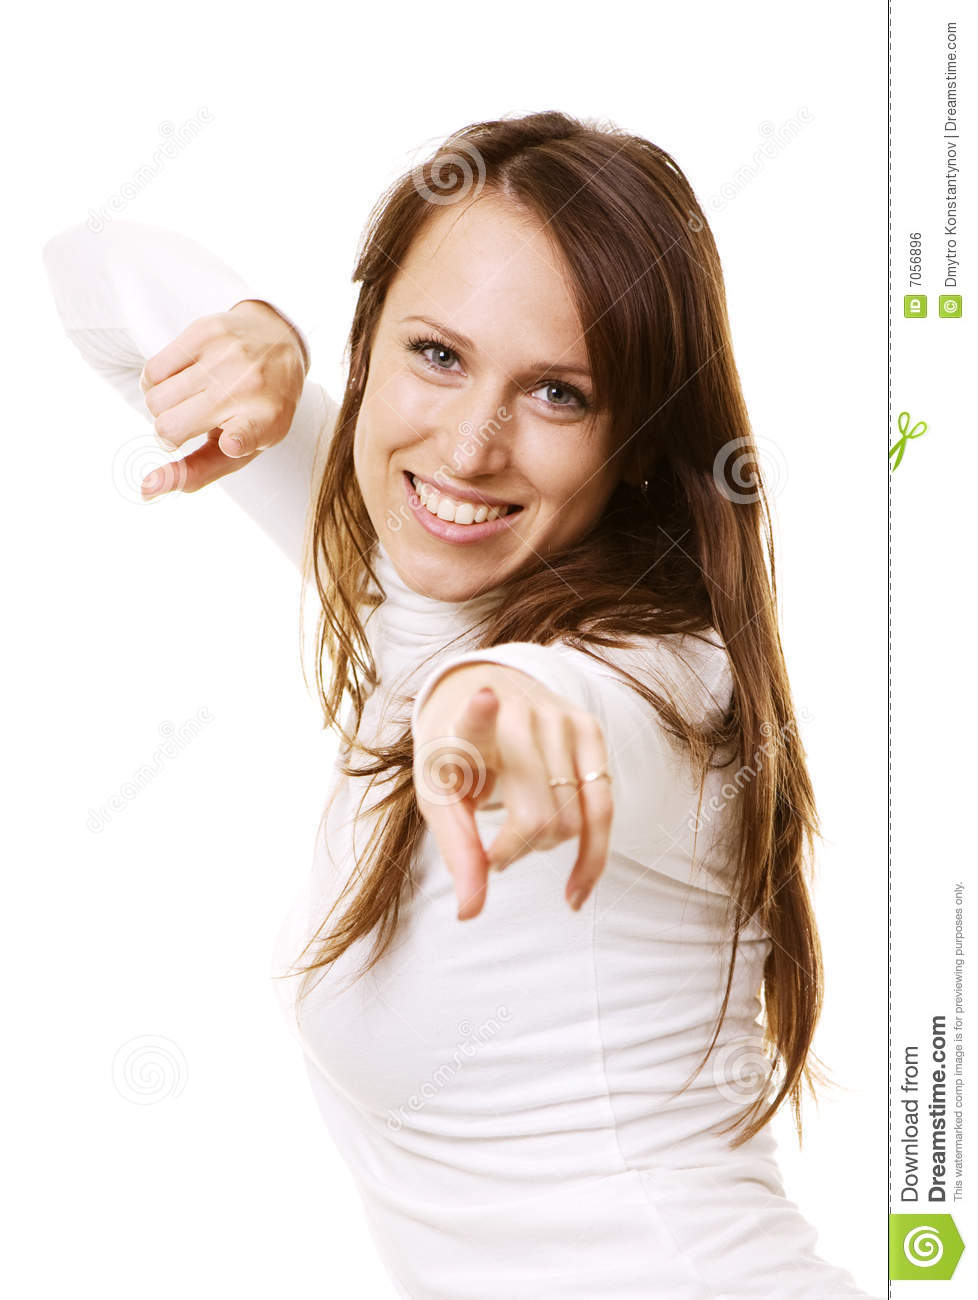 Smiley woman pointing